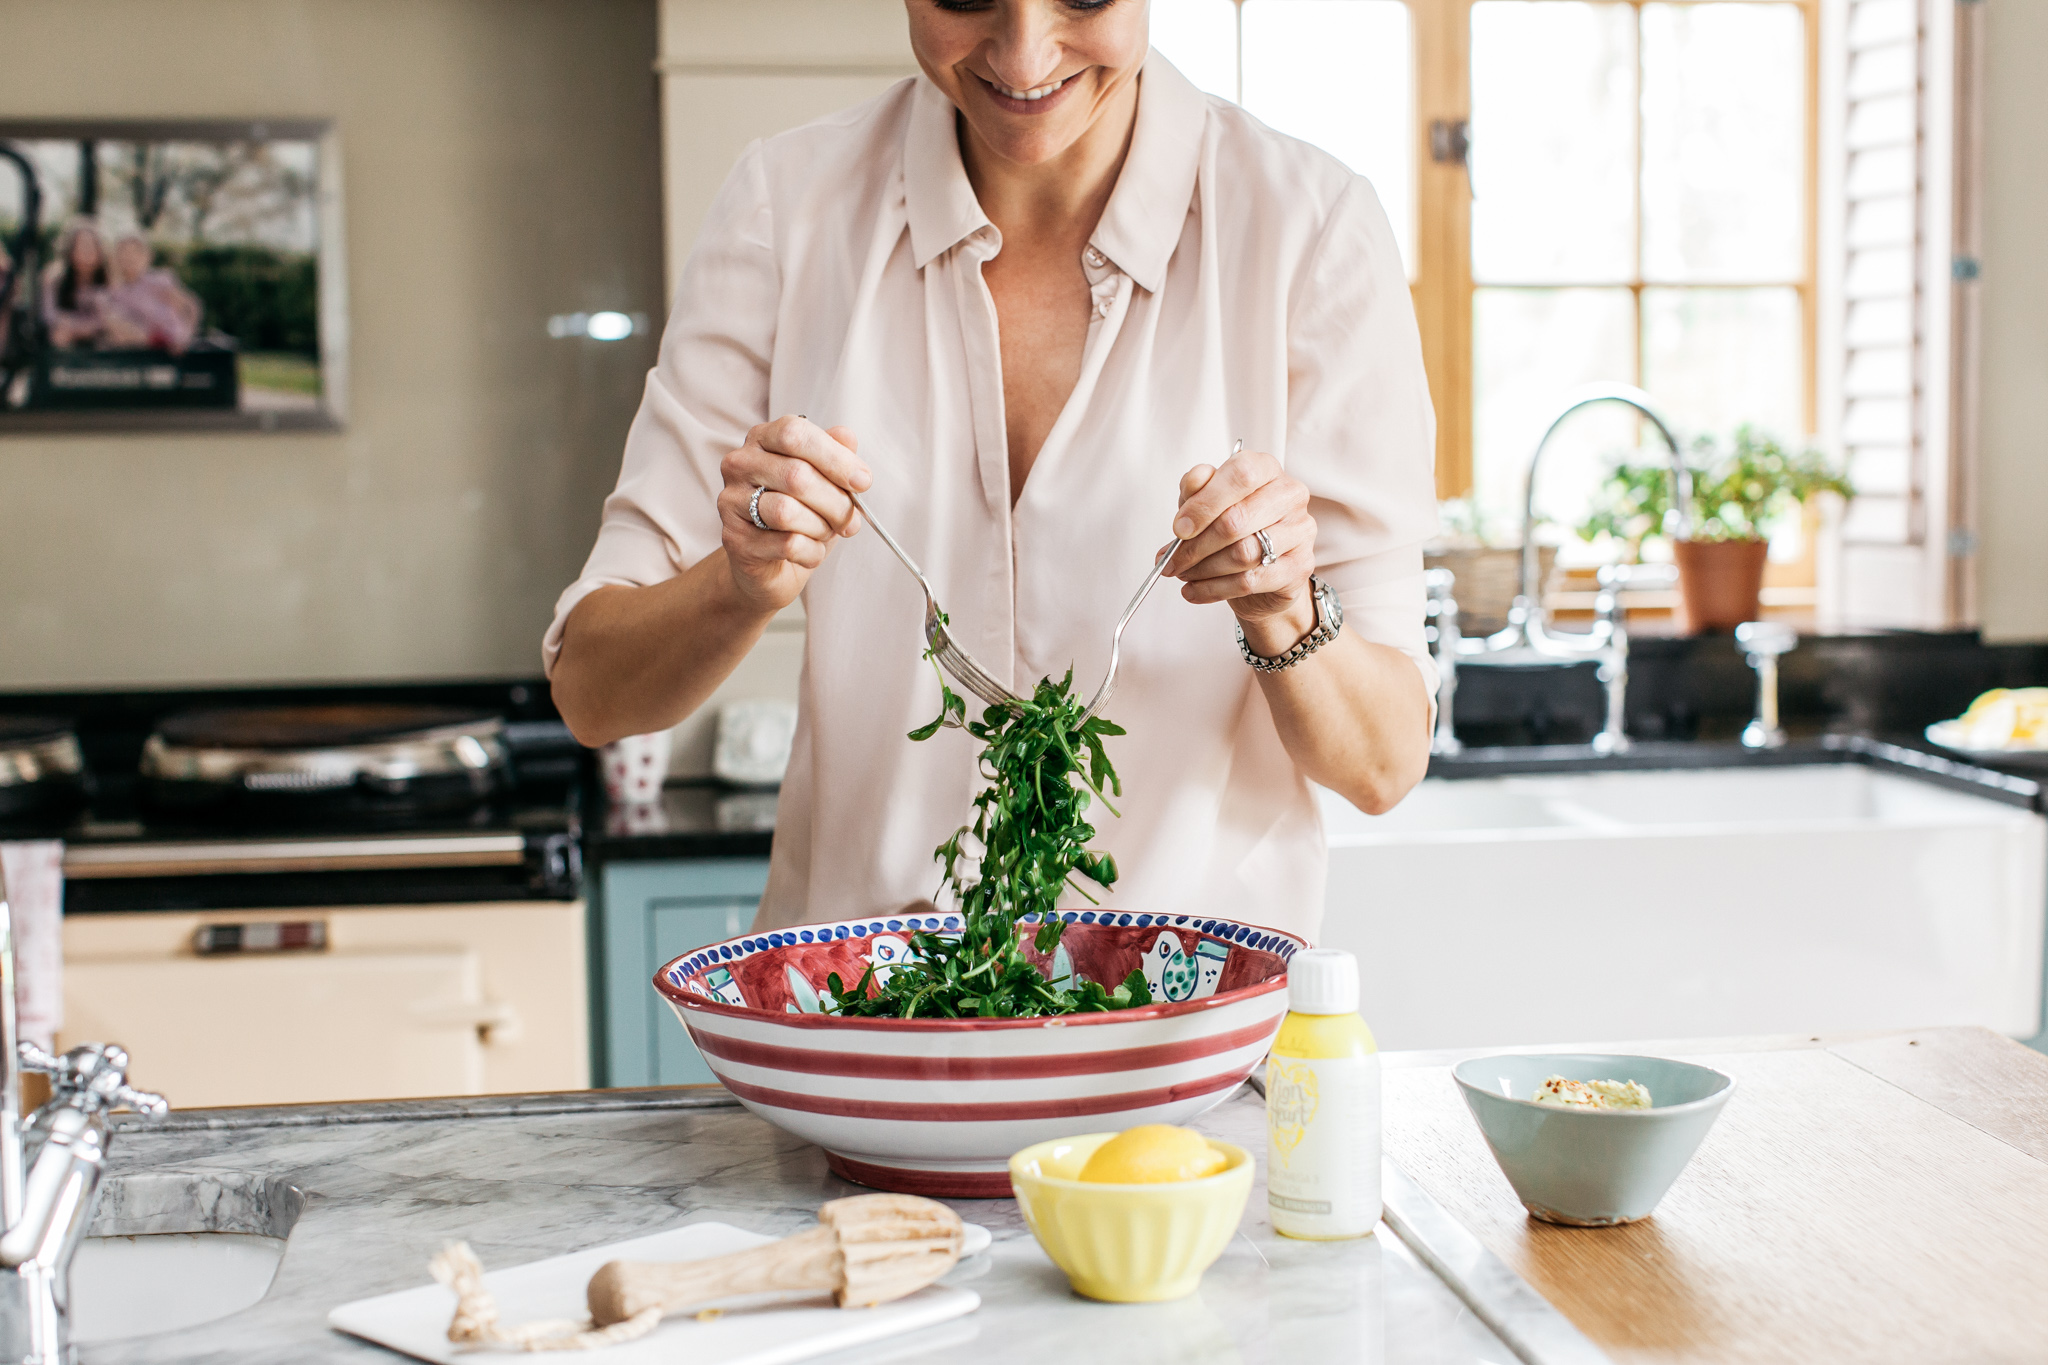 Salad being prepared for lunch.Food lifestyle photography for Bare Biology by Emma Gutteridge